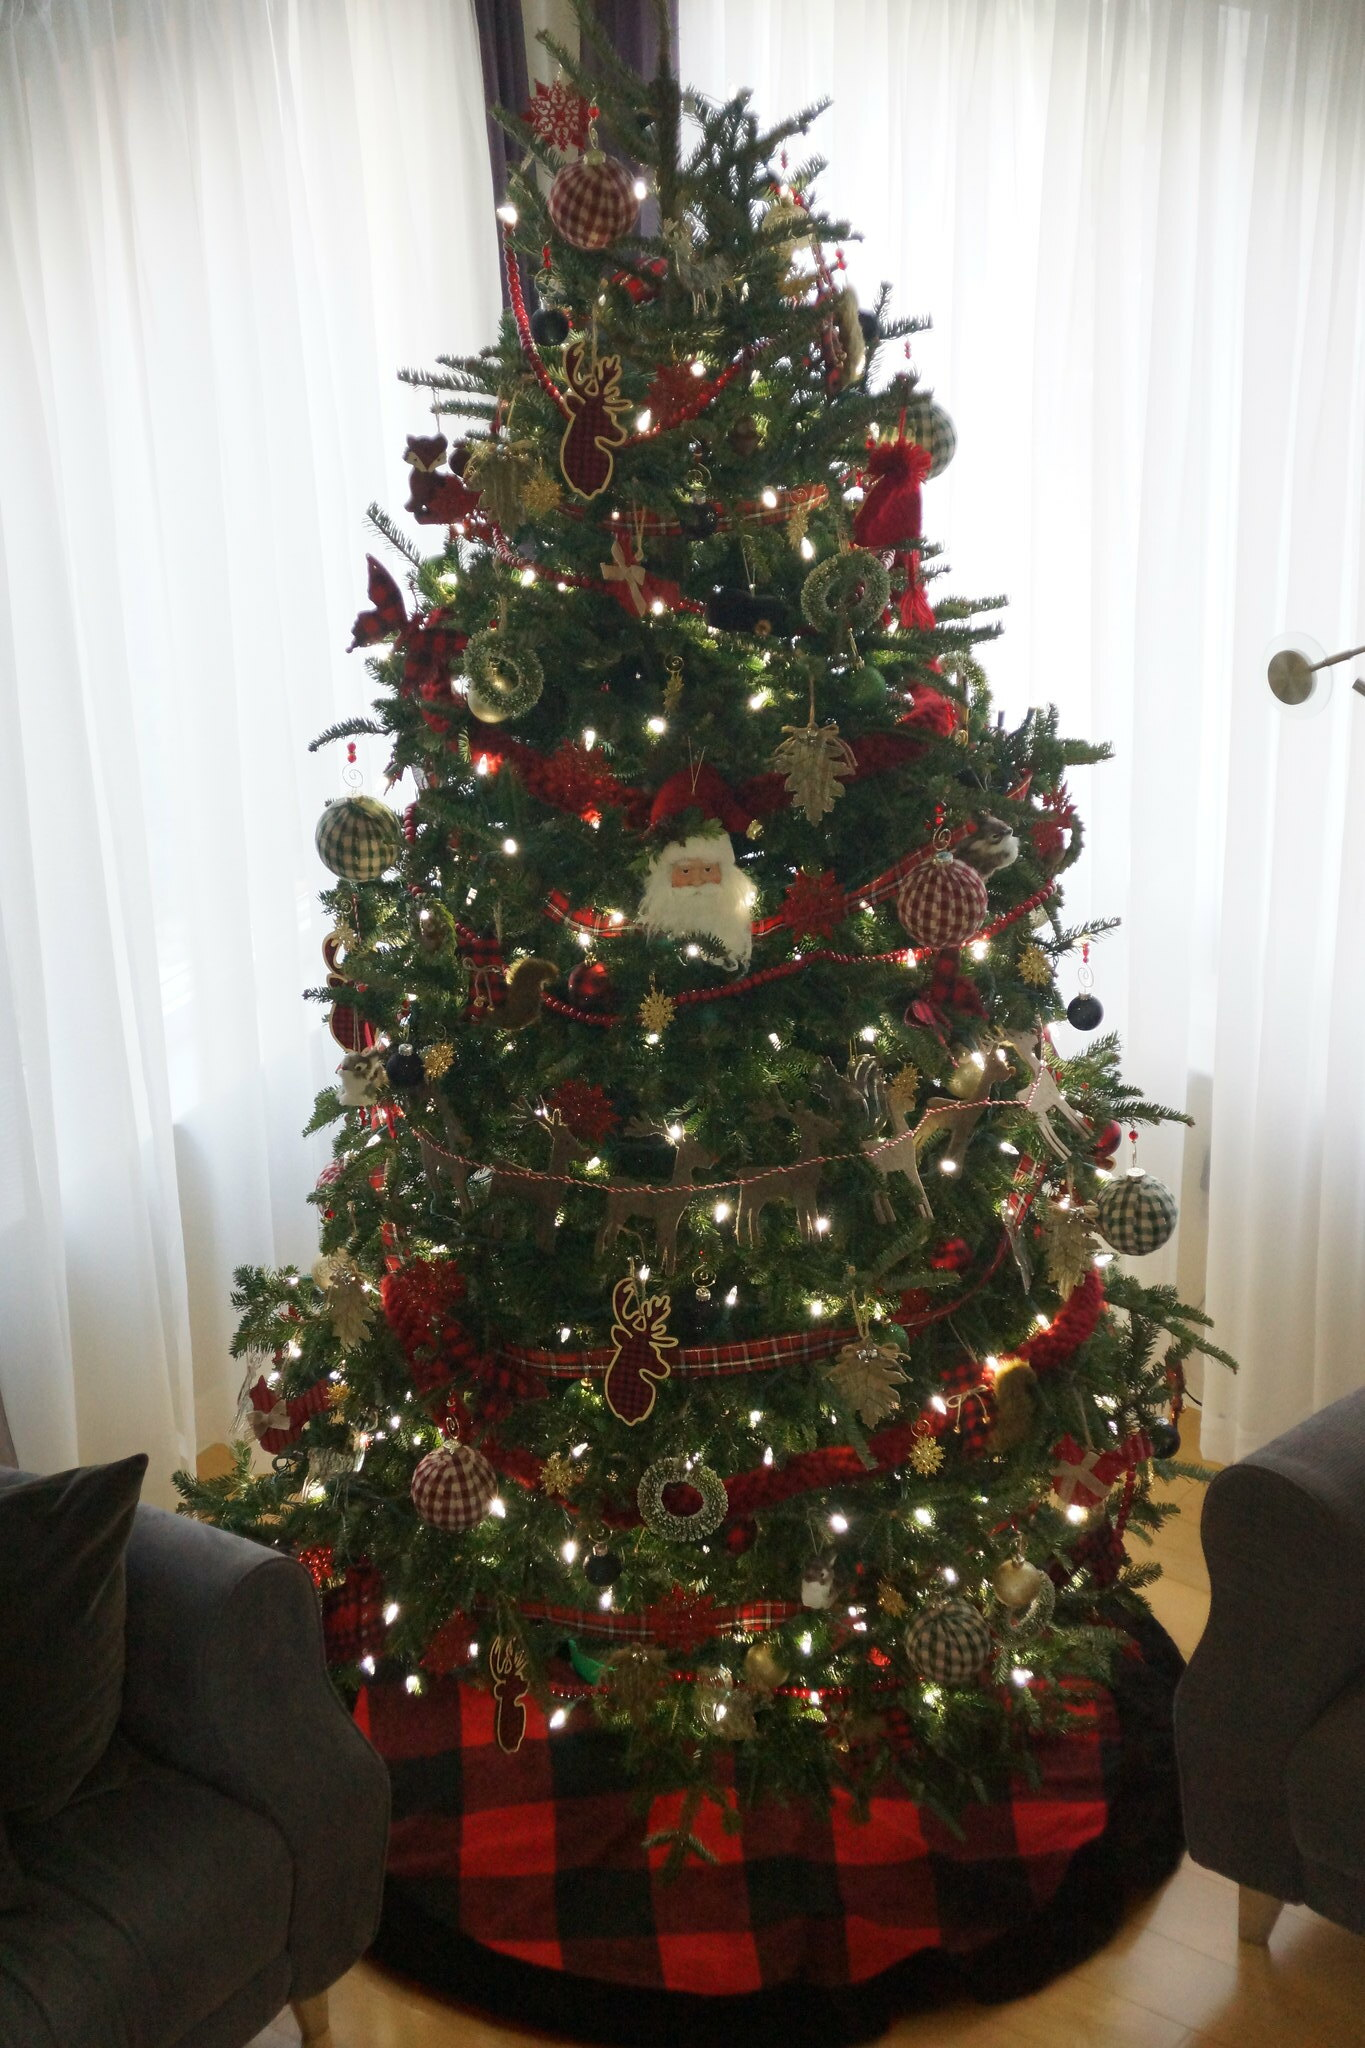 2018-12-02 - Decorating our Christmas Tree